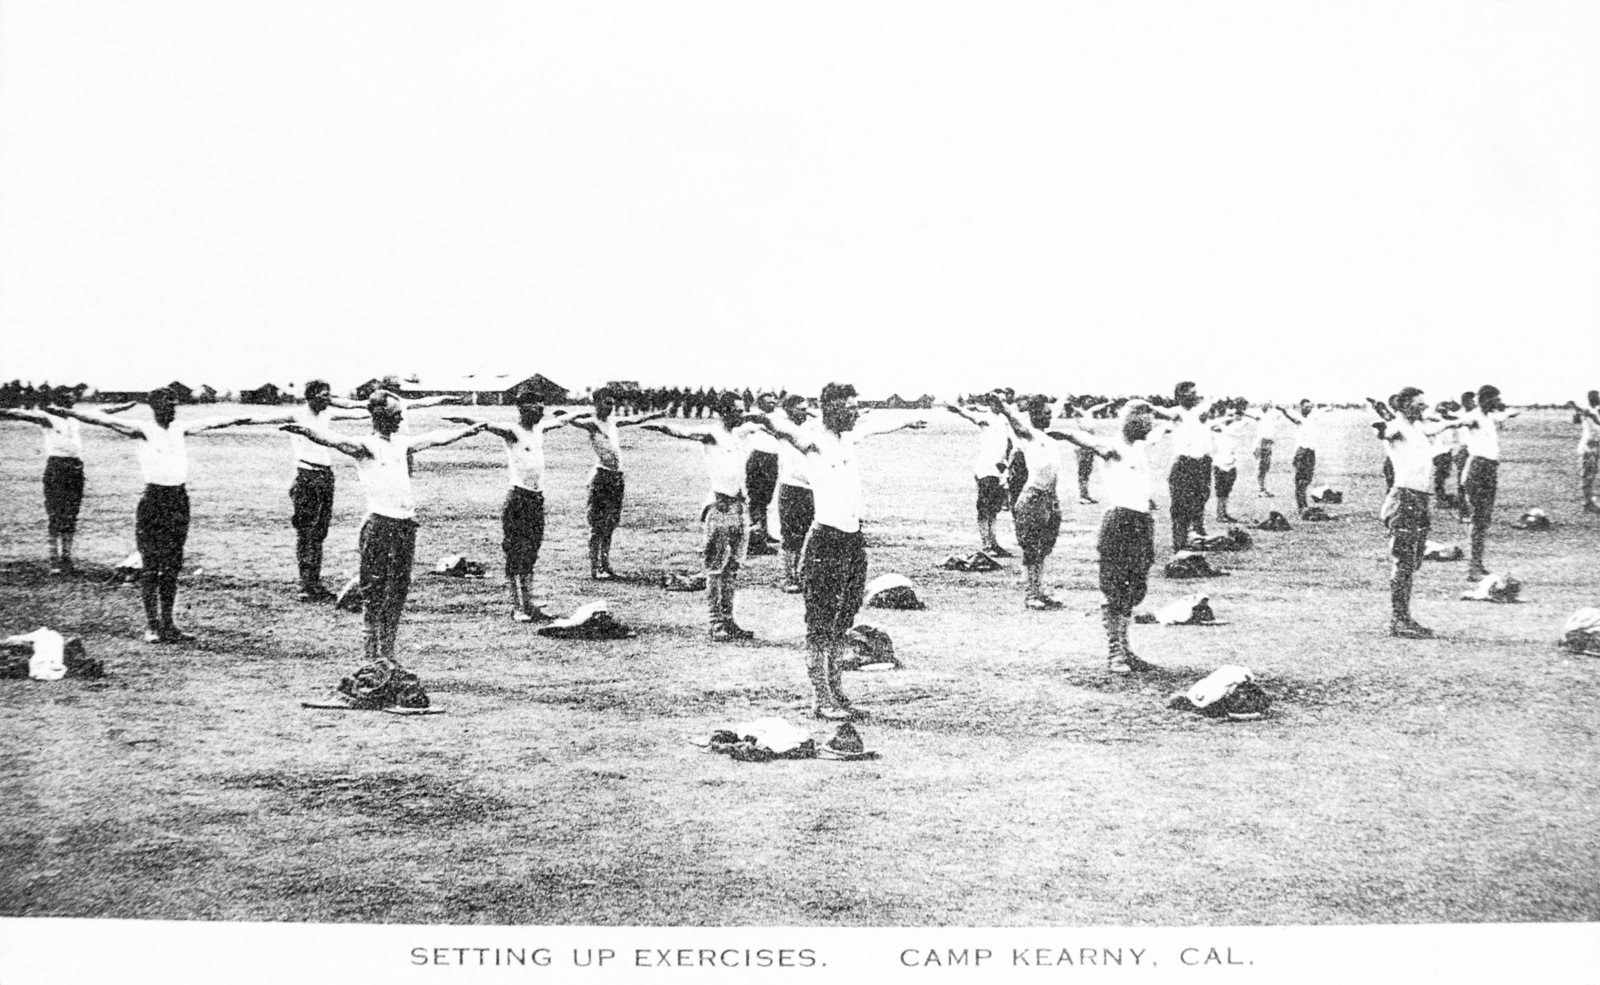 Members of the US Army (USA) 40th Division setting up for exercises at Camp Kearny, California (CA). Note: In the future this area became the US Navy (USN) Naval Air Station Miramar. (Exact Date Shot Unknown)